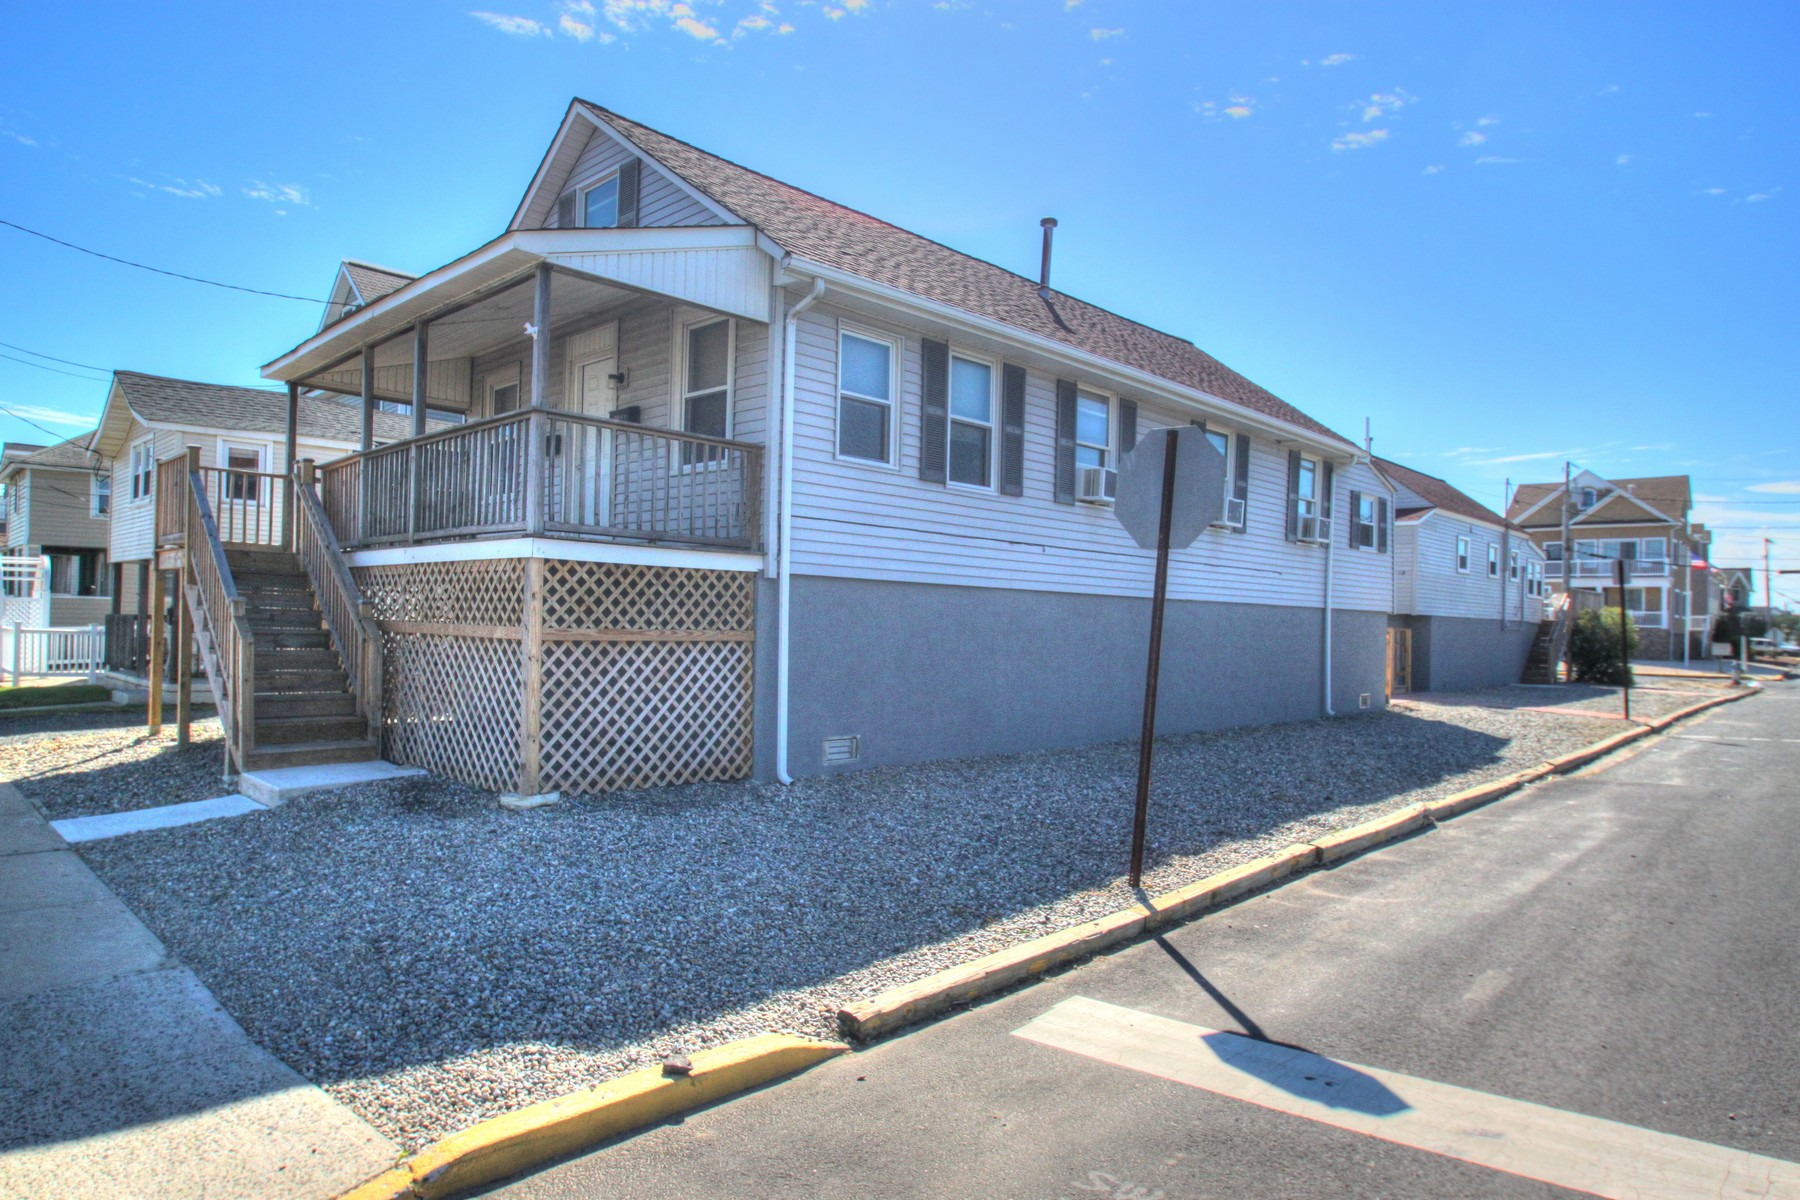 Multi-Family Home for Sale at Great Investment ~ Two Units 549-549 1/2 Brielle Rd Manasquan, New Jersey, 08736 United States